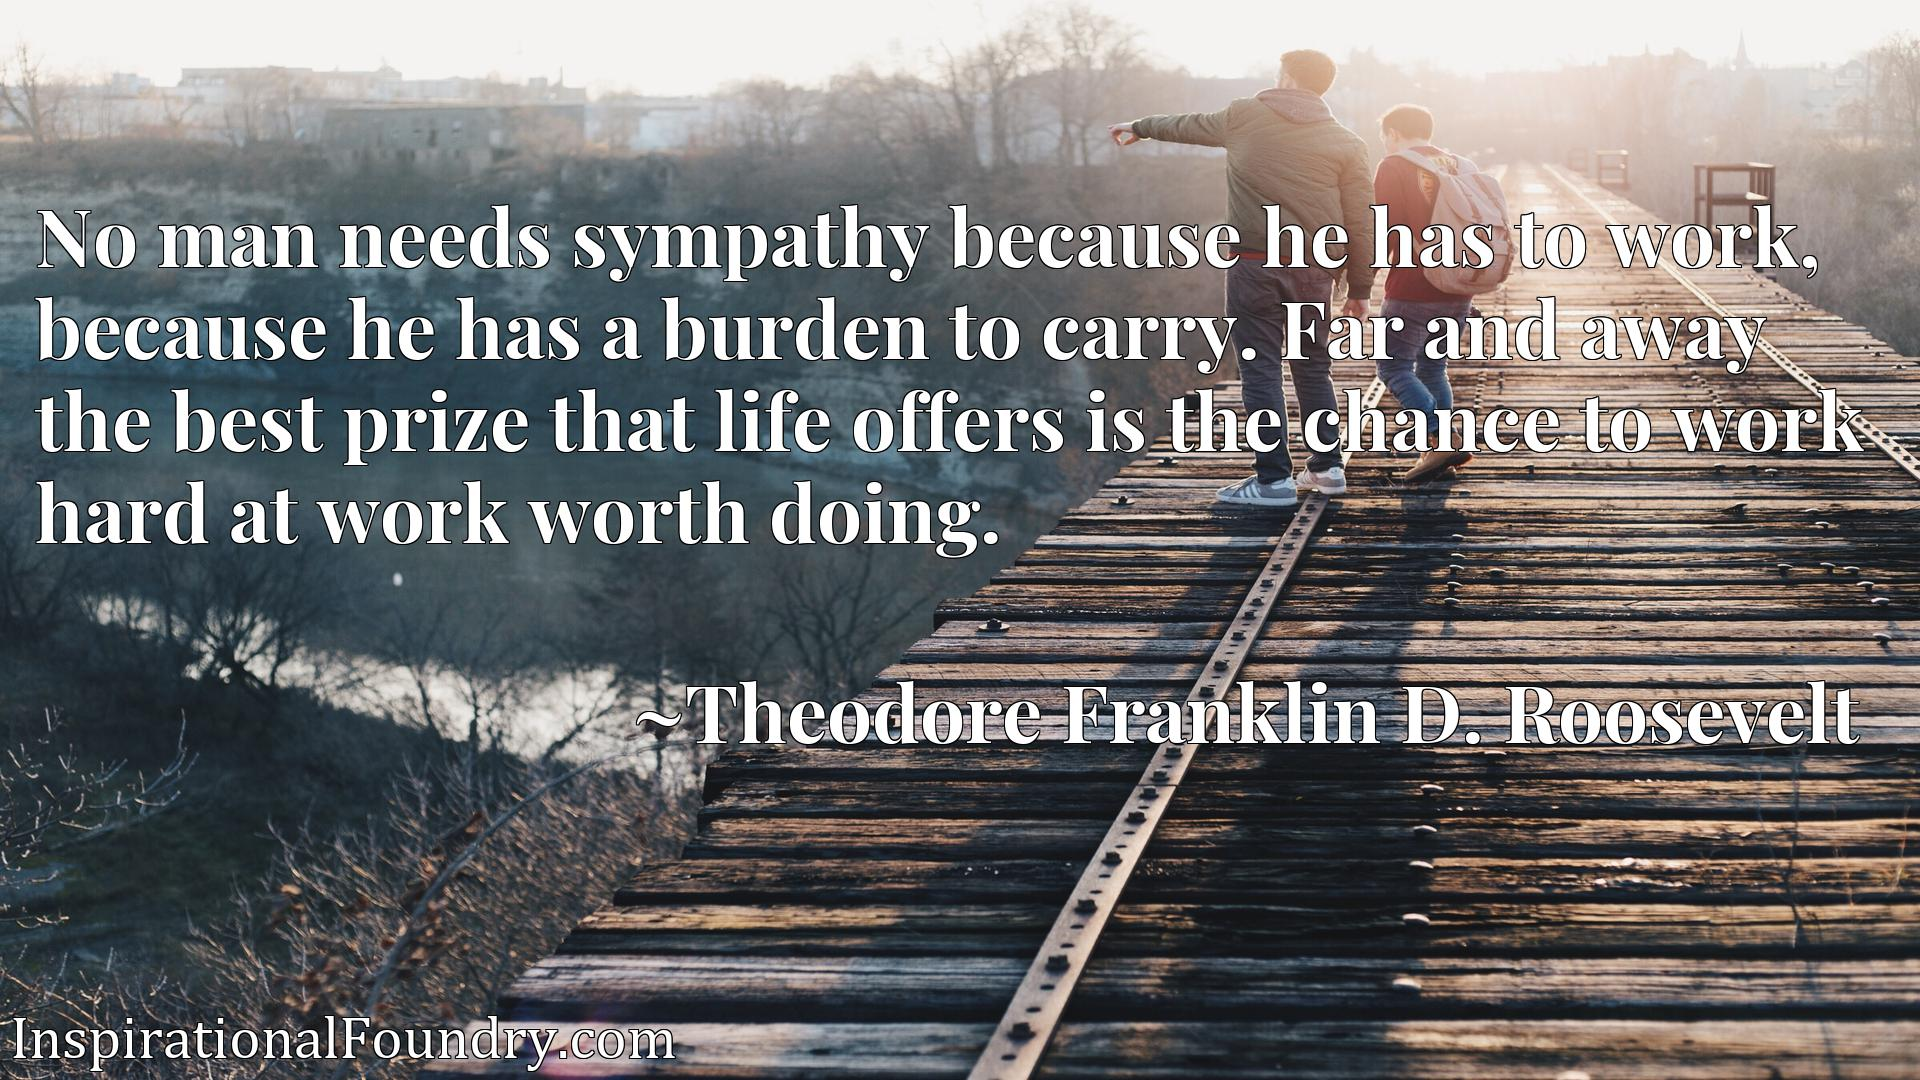 No man needs sympathy because he has to work, because he has a burden to carry. Far and away the best prize that life offers is the chance to work hard at work worth doing.